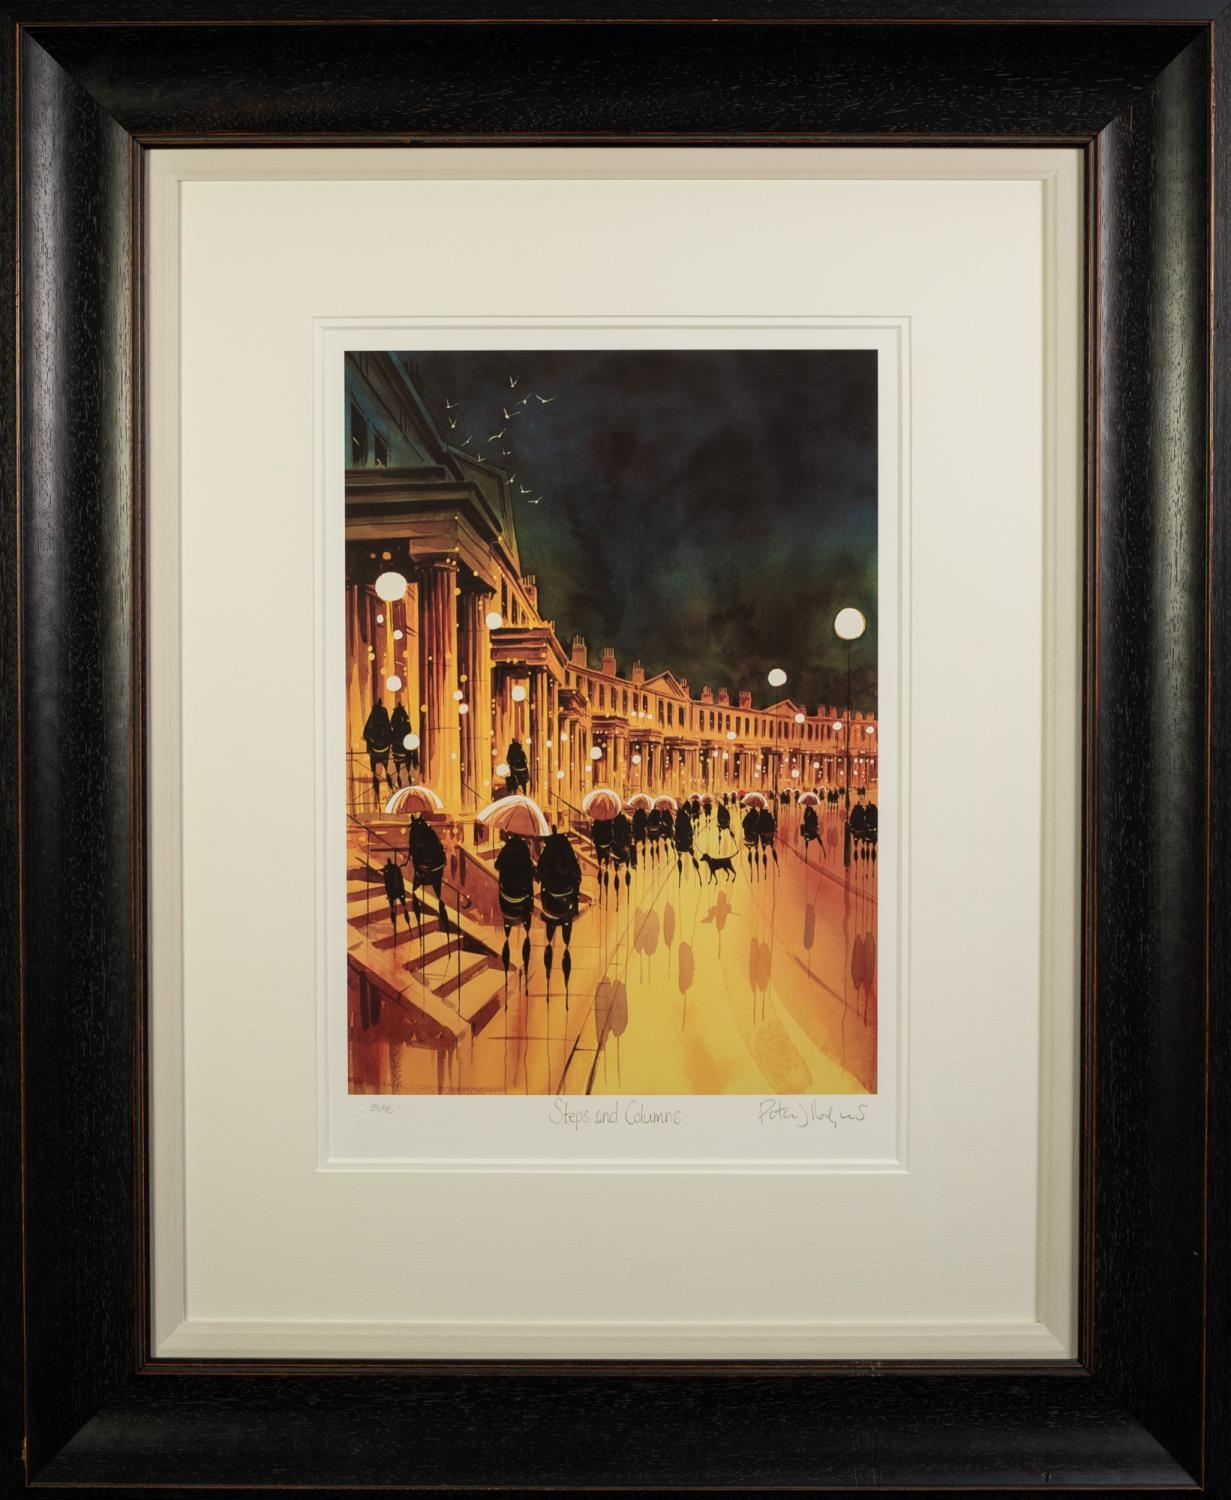 PETER J. RODGERS (MODERN) ARTIST SIGNED LIMITED EDITION COLOUR PRINT ON PAPER ?Steps and - Image 2 of 2